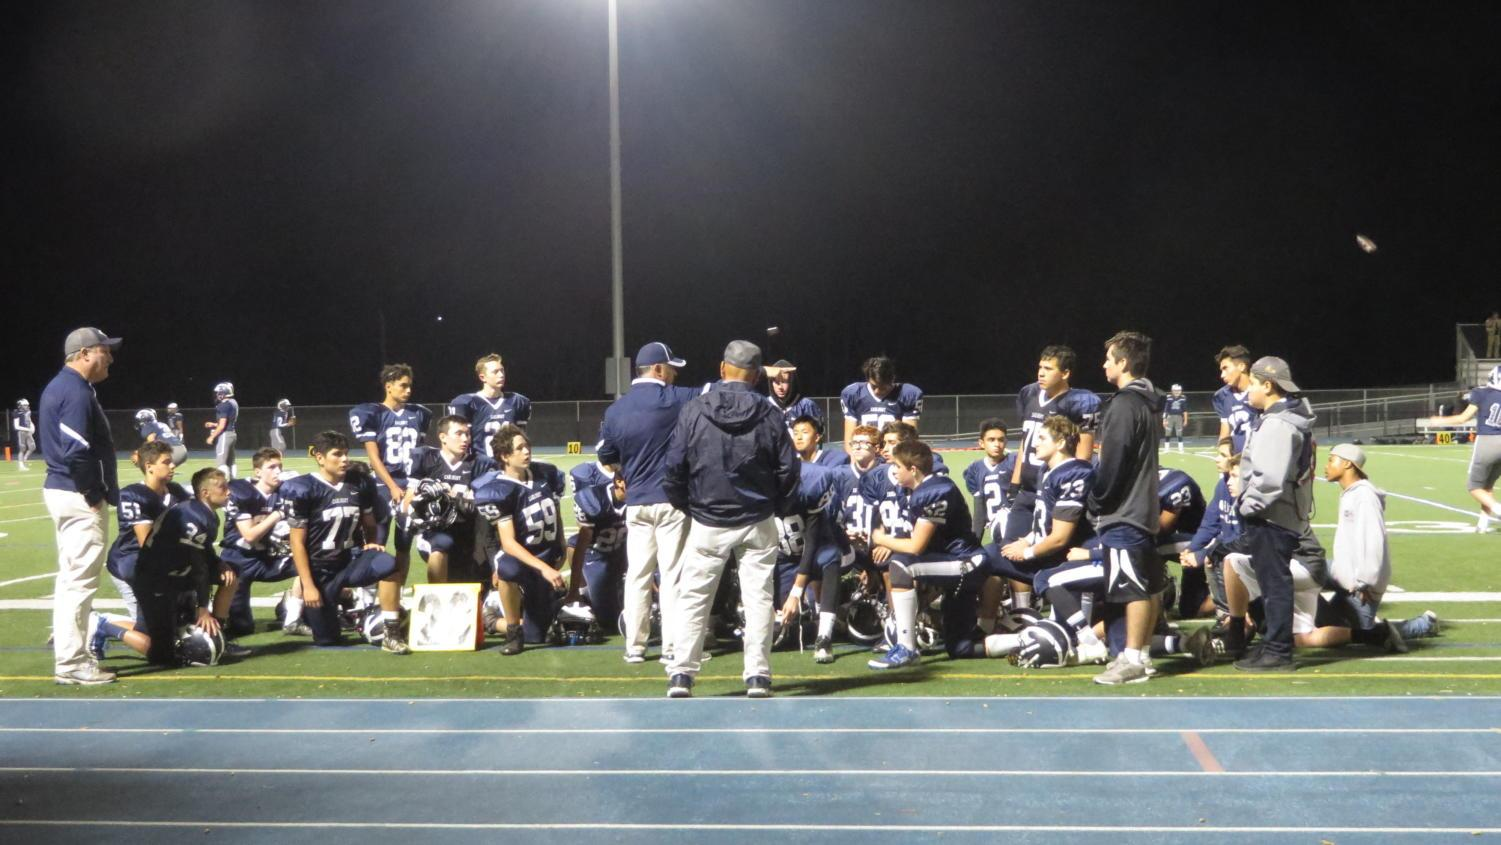 The JV team gathers around Head Coach Bruce Douglas after the game.